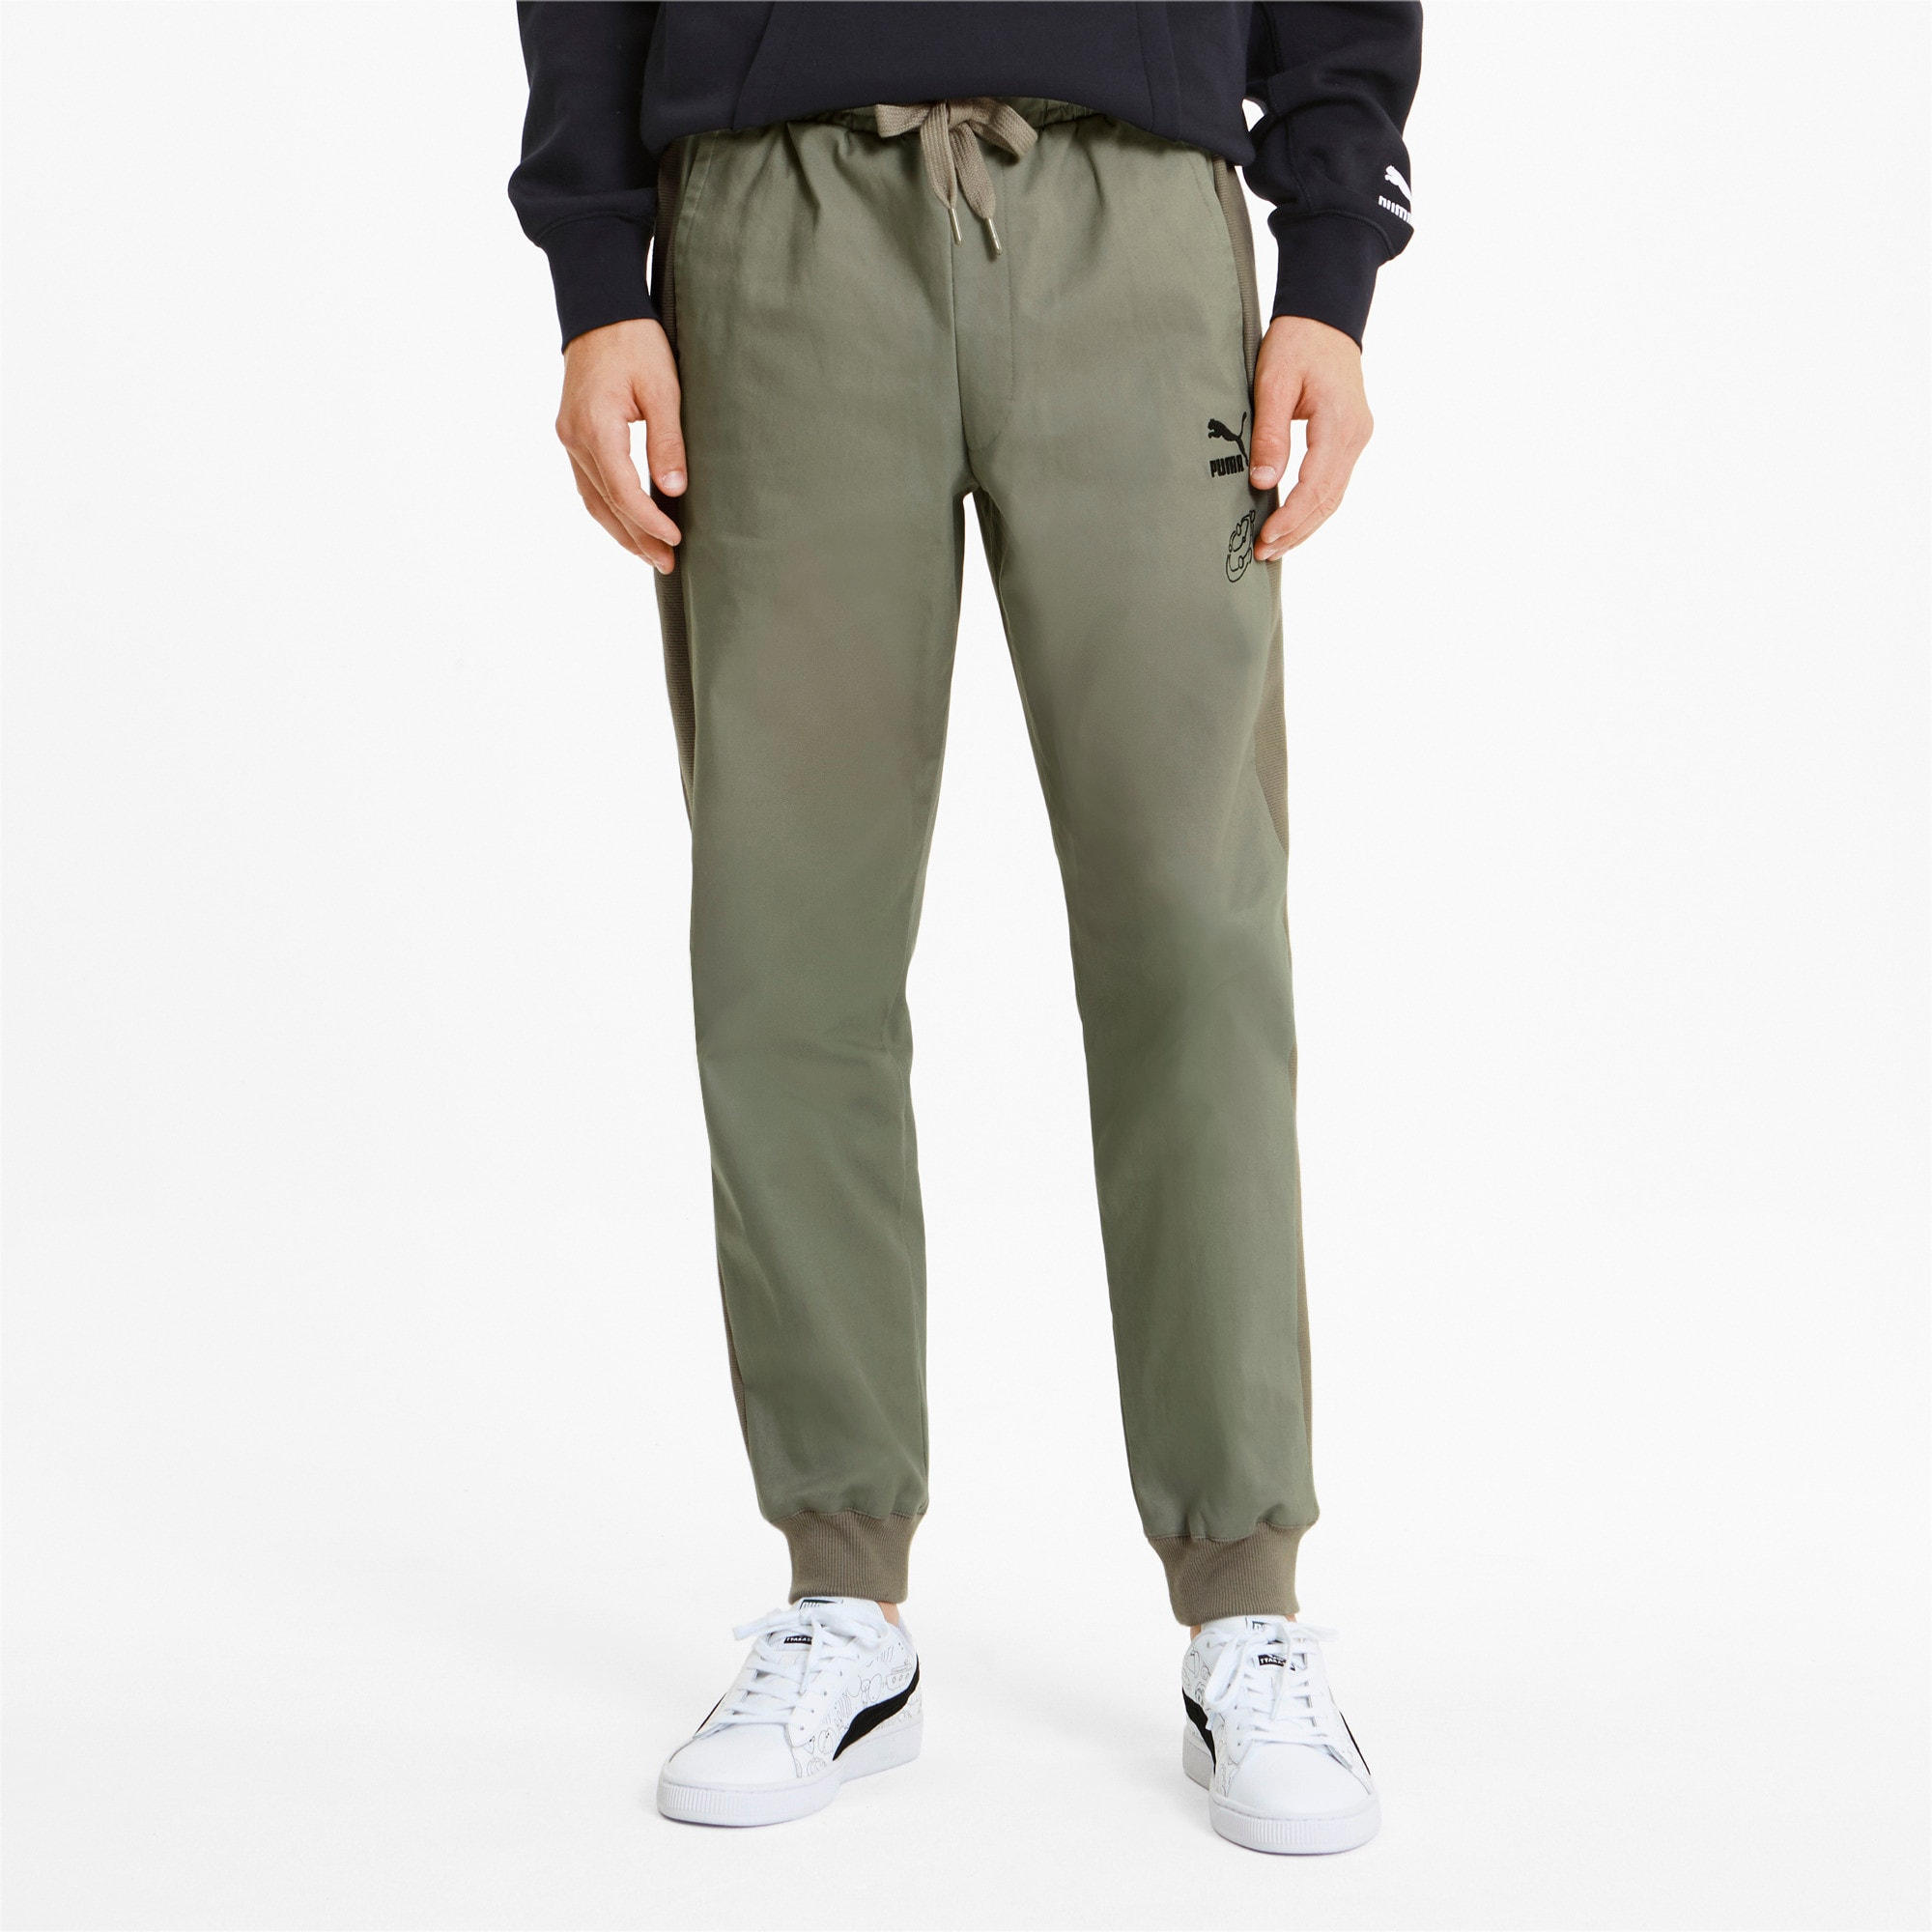 Thumbnail 2 of PUMA x TYAKASHA Men's Track Pants, Vetiver, medium